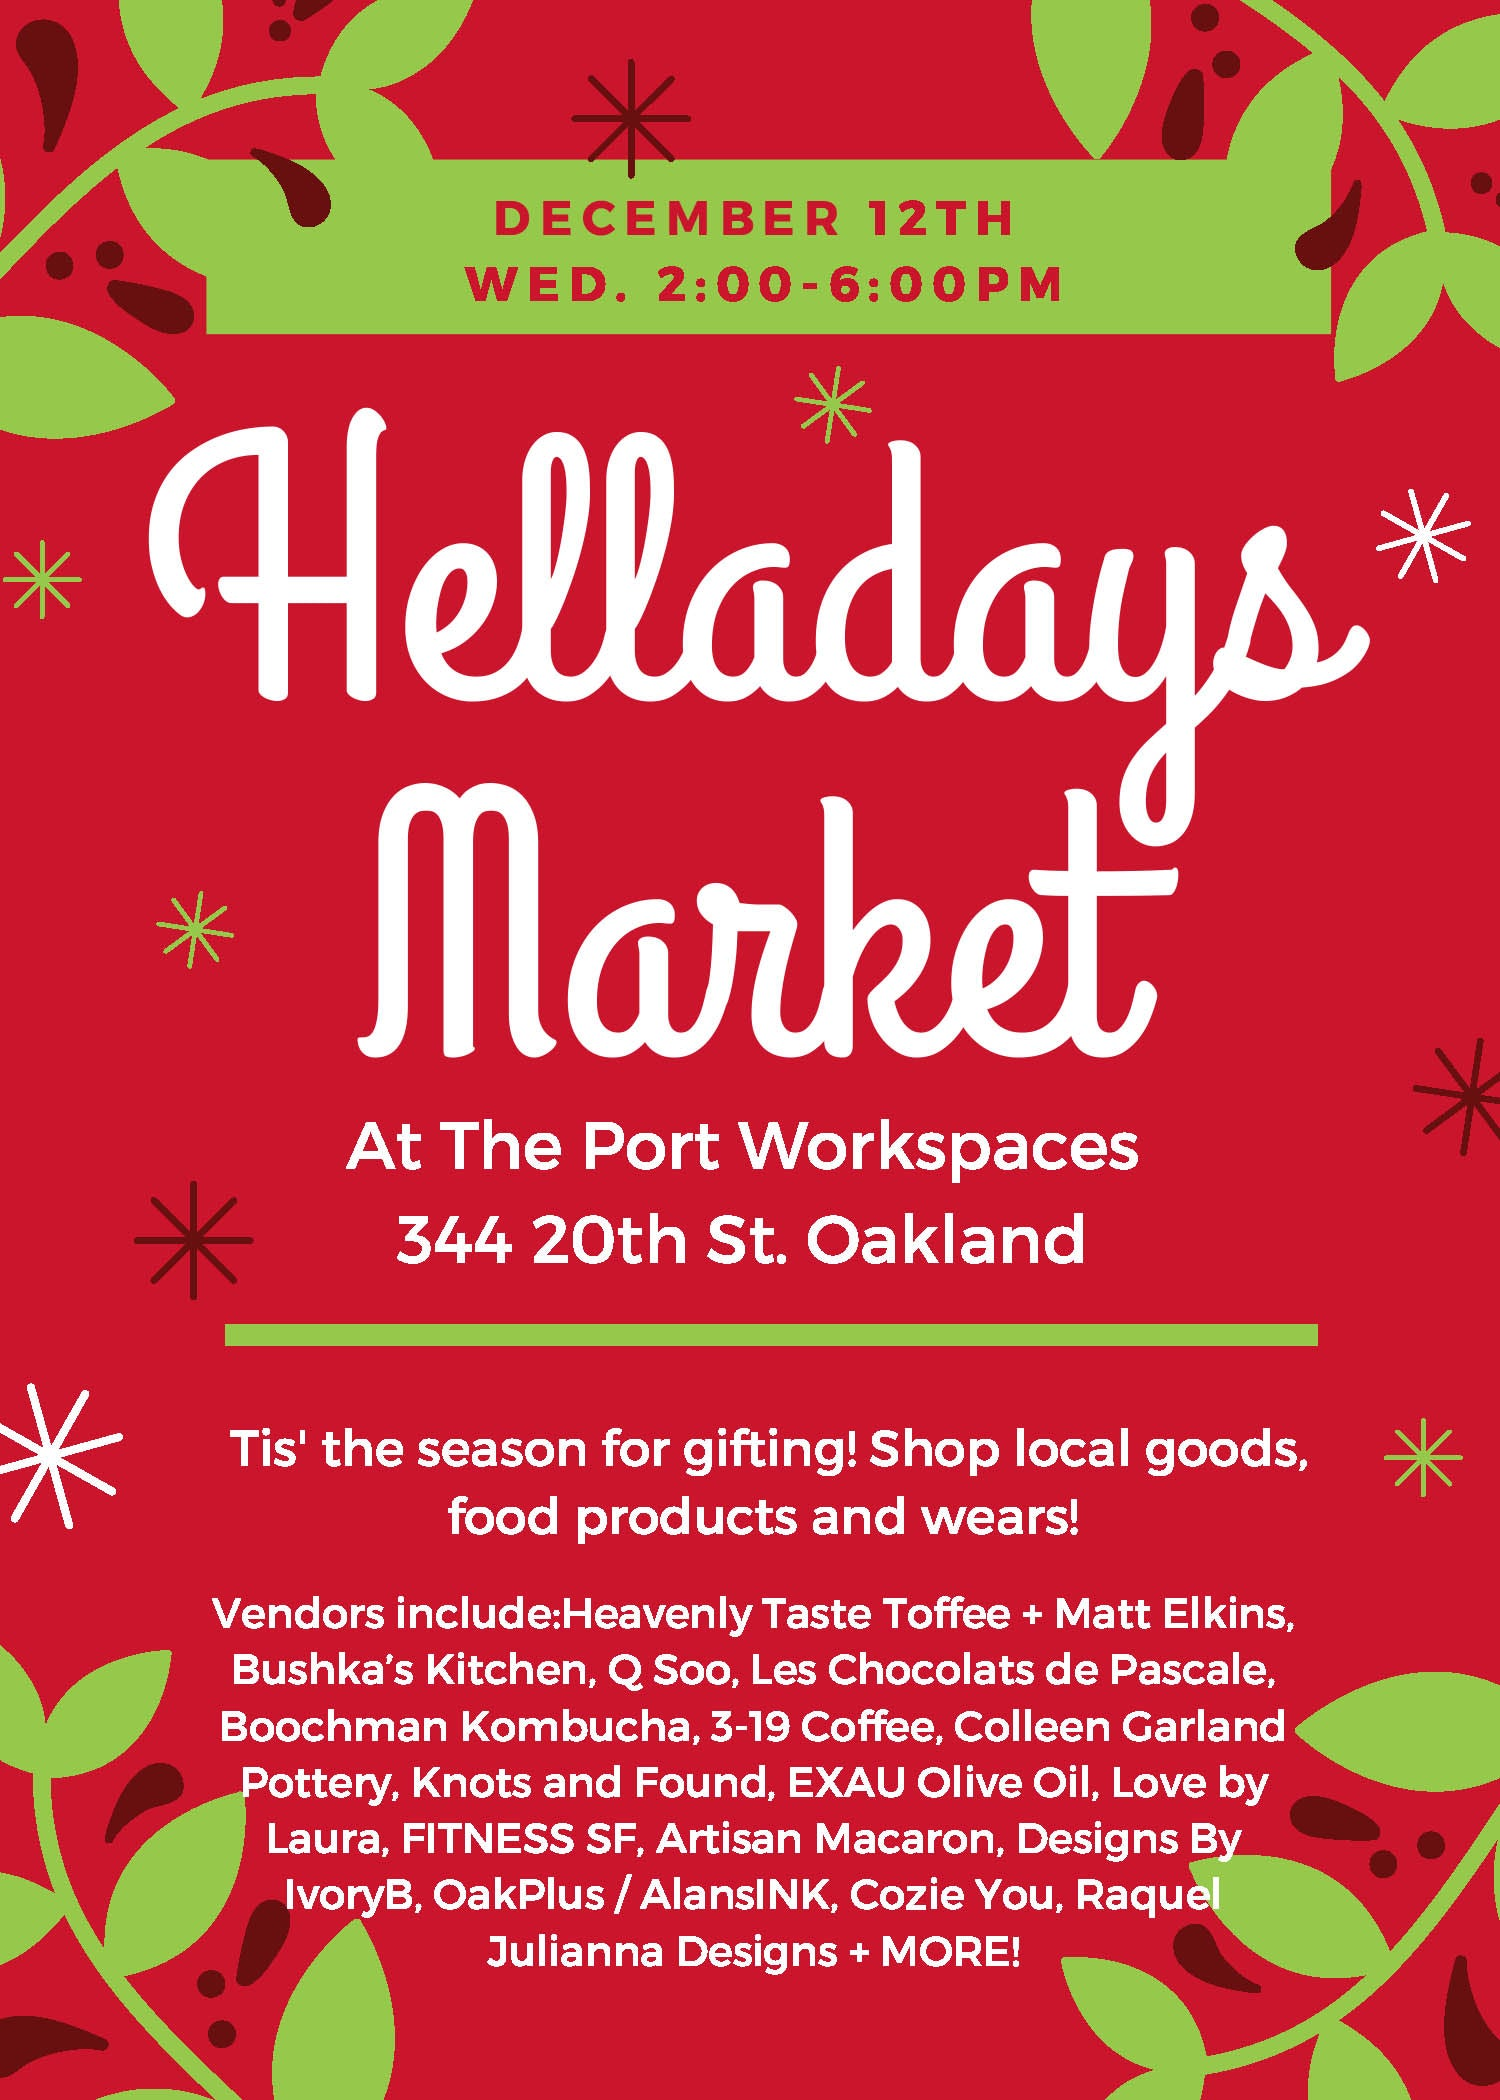 Helladays Holiday Market The Port Workspace